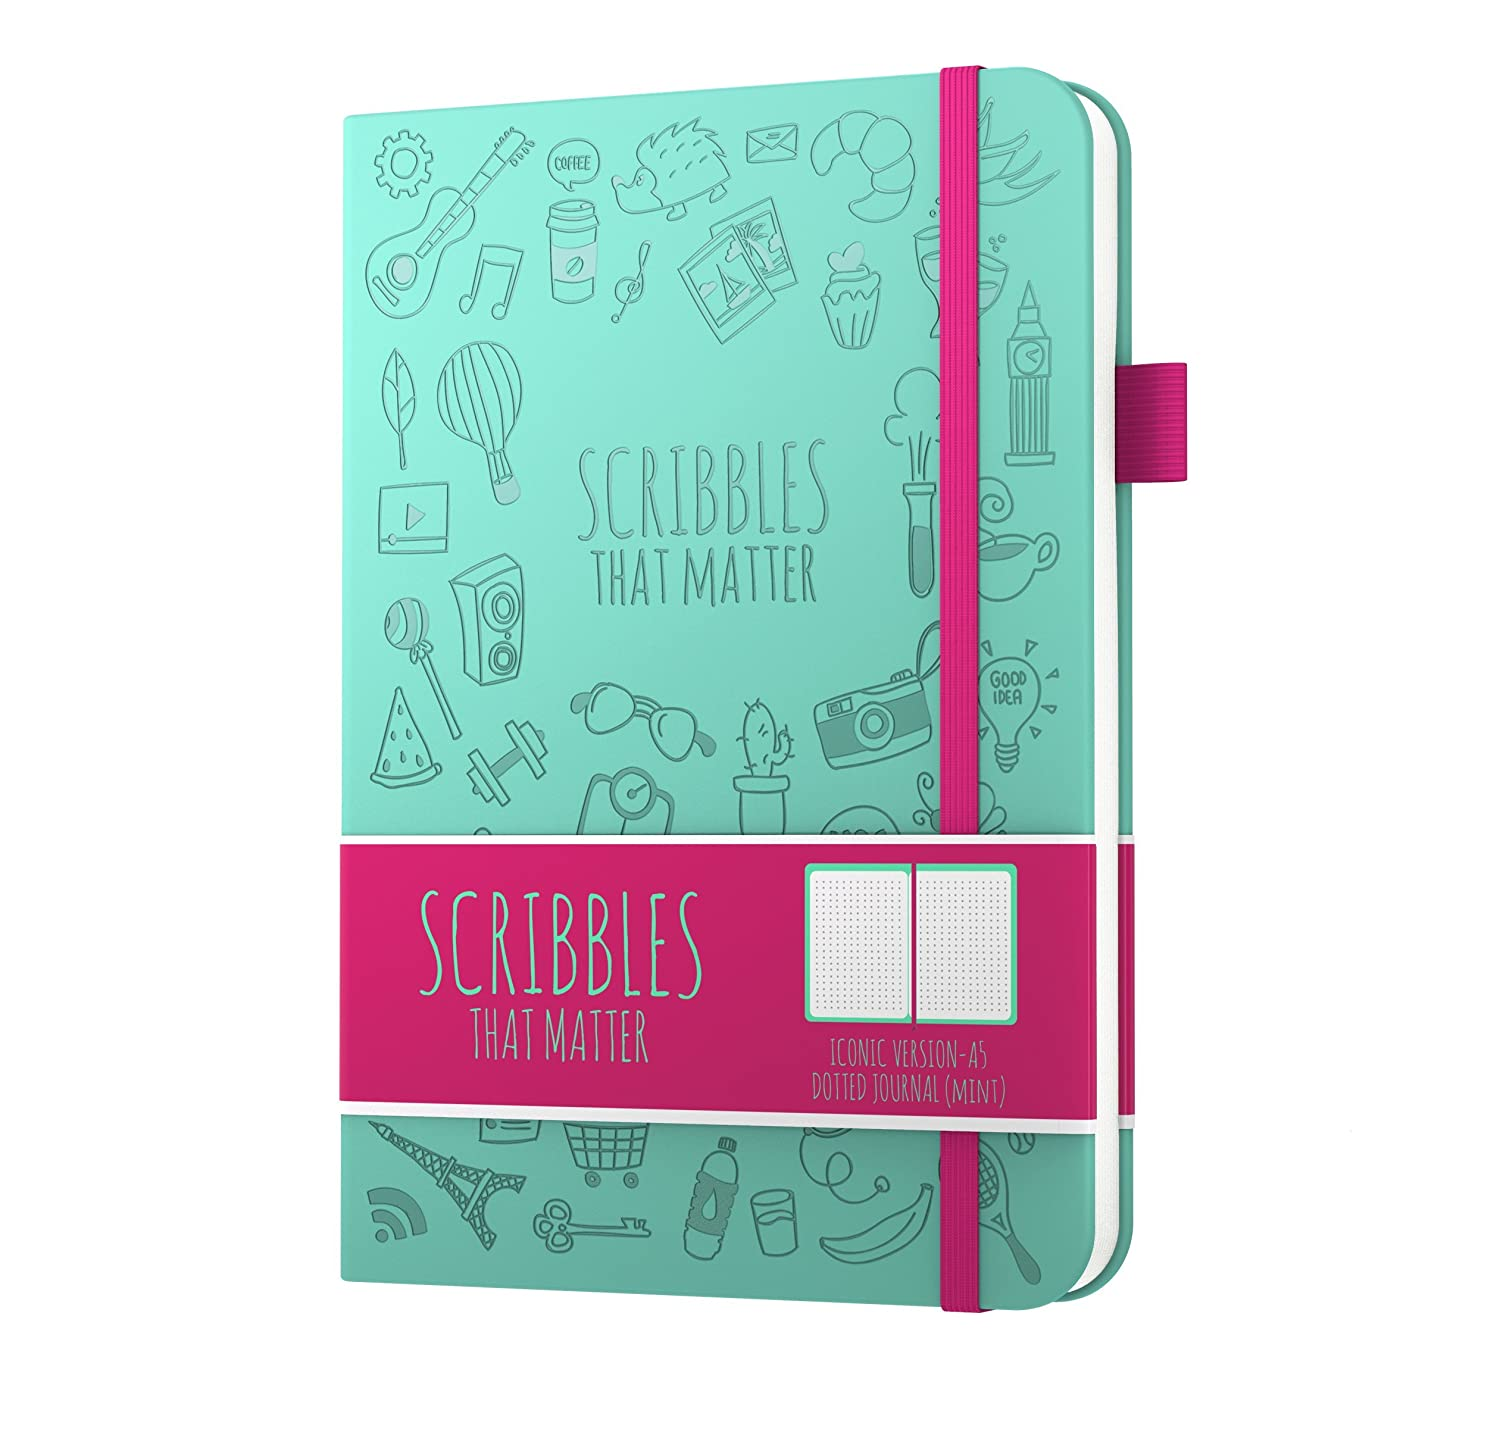 Scribbles That Matter (Iconic Version) Dotted Journal Notebook Diary A5 - Elastic Band - Beautiful Designer Cover - Premium Thick Paper (Lavender)